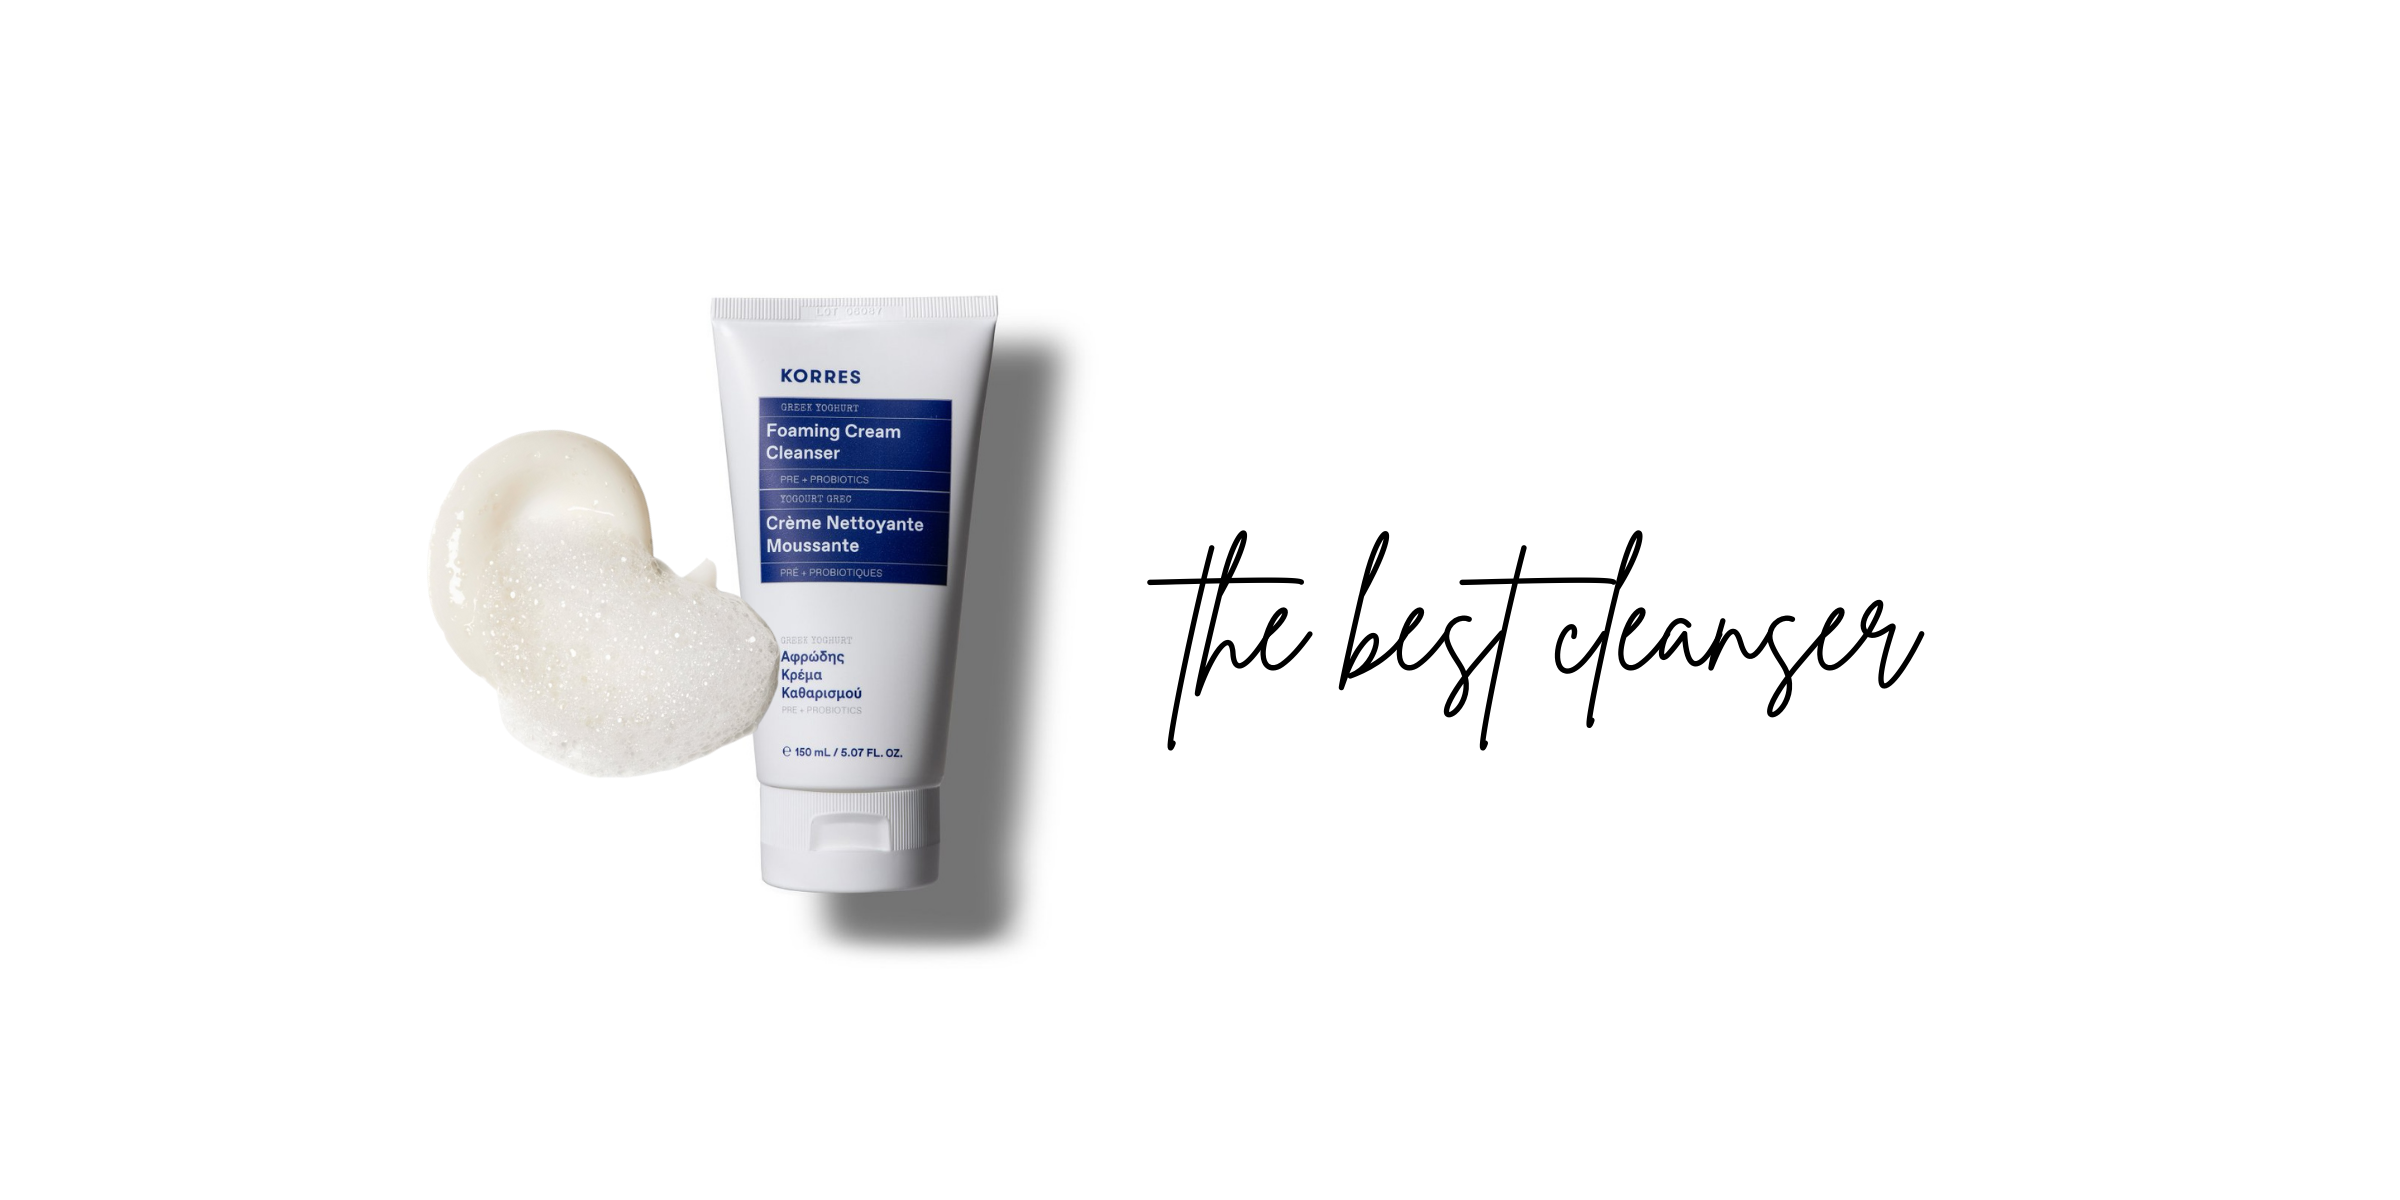 the best cleanser for your travel skincare kit from korres